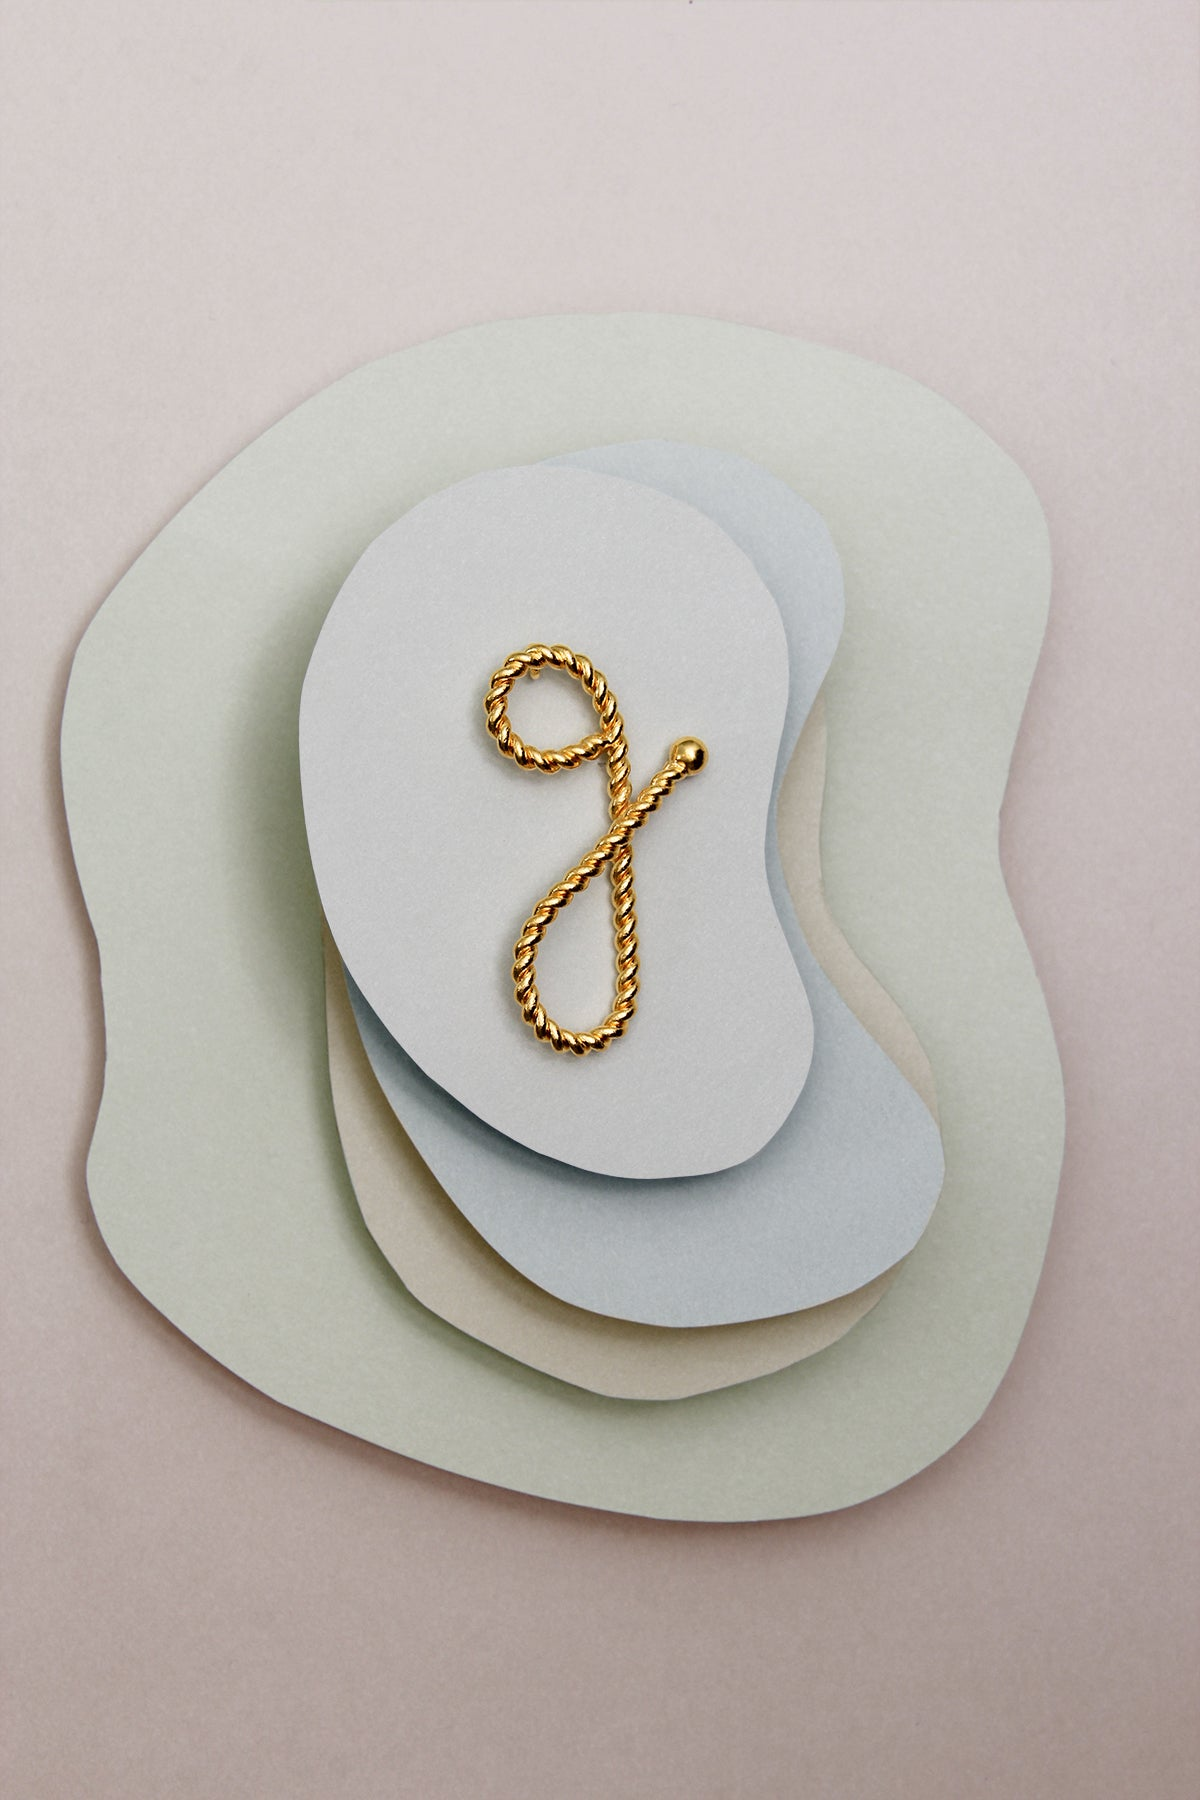 THE INITIAL G NECKLACE